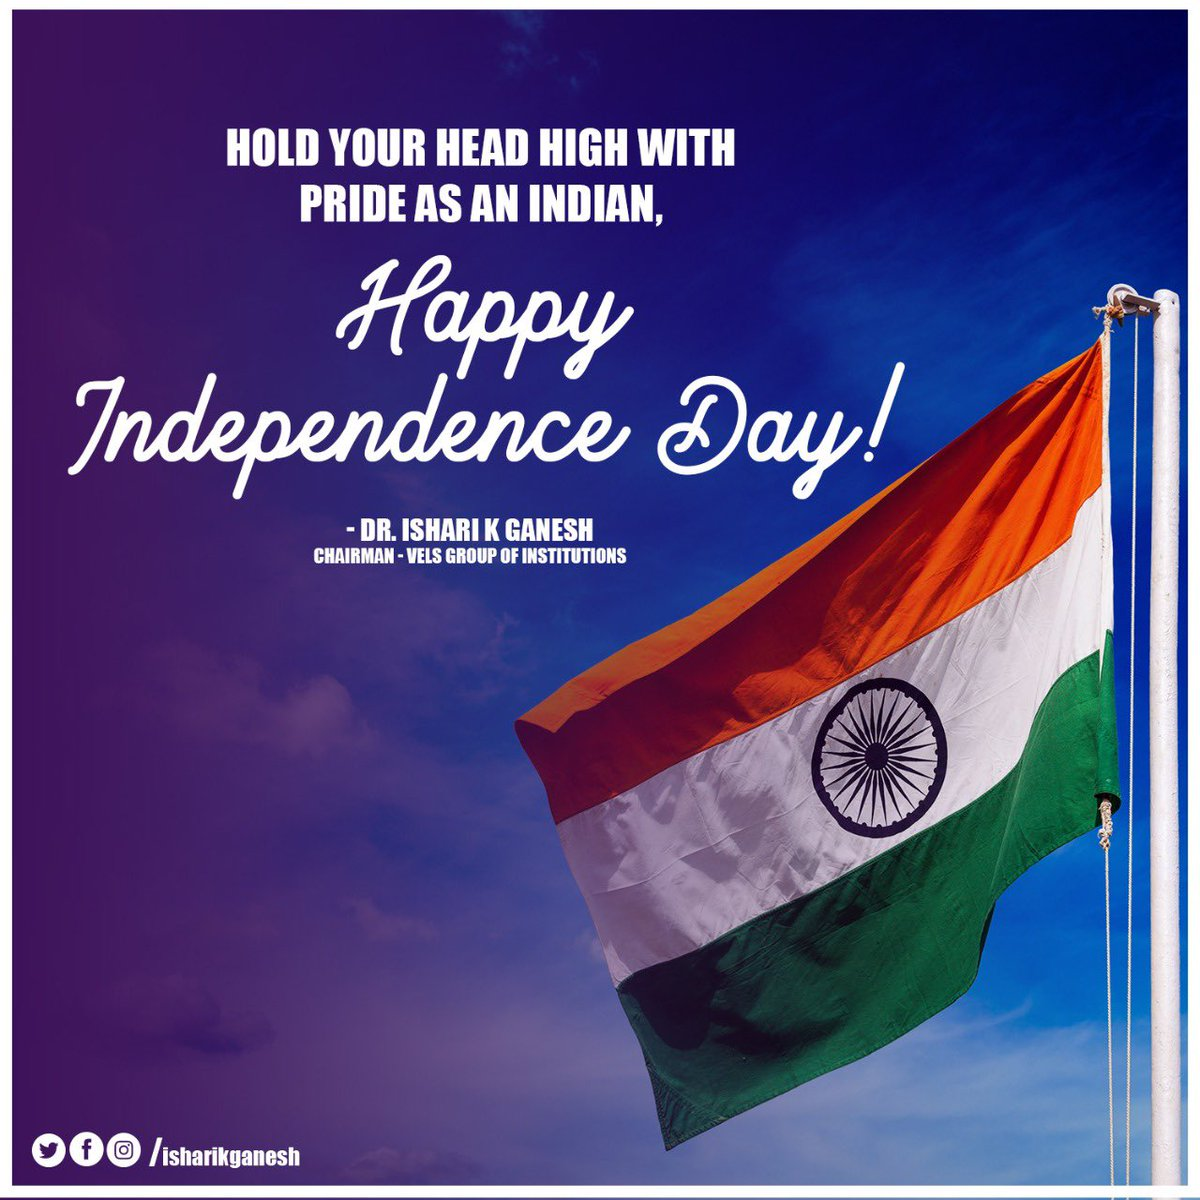 Saluting every freedom fighter who gave us the freedom we are enjoying today. Happy Independence Day! . #drisharikganesh #indepenceday #India #pride https://t.co/eg6cuj0dpu